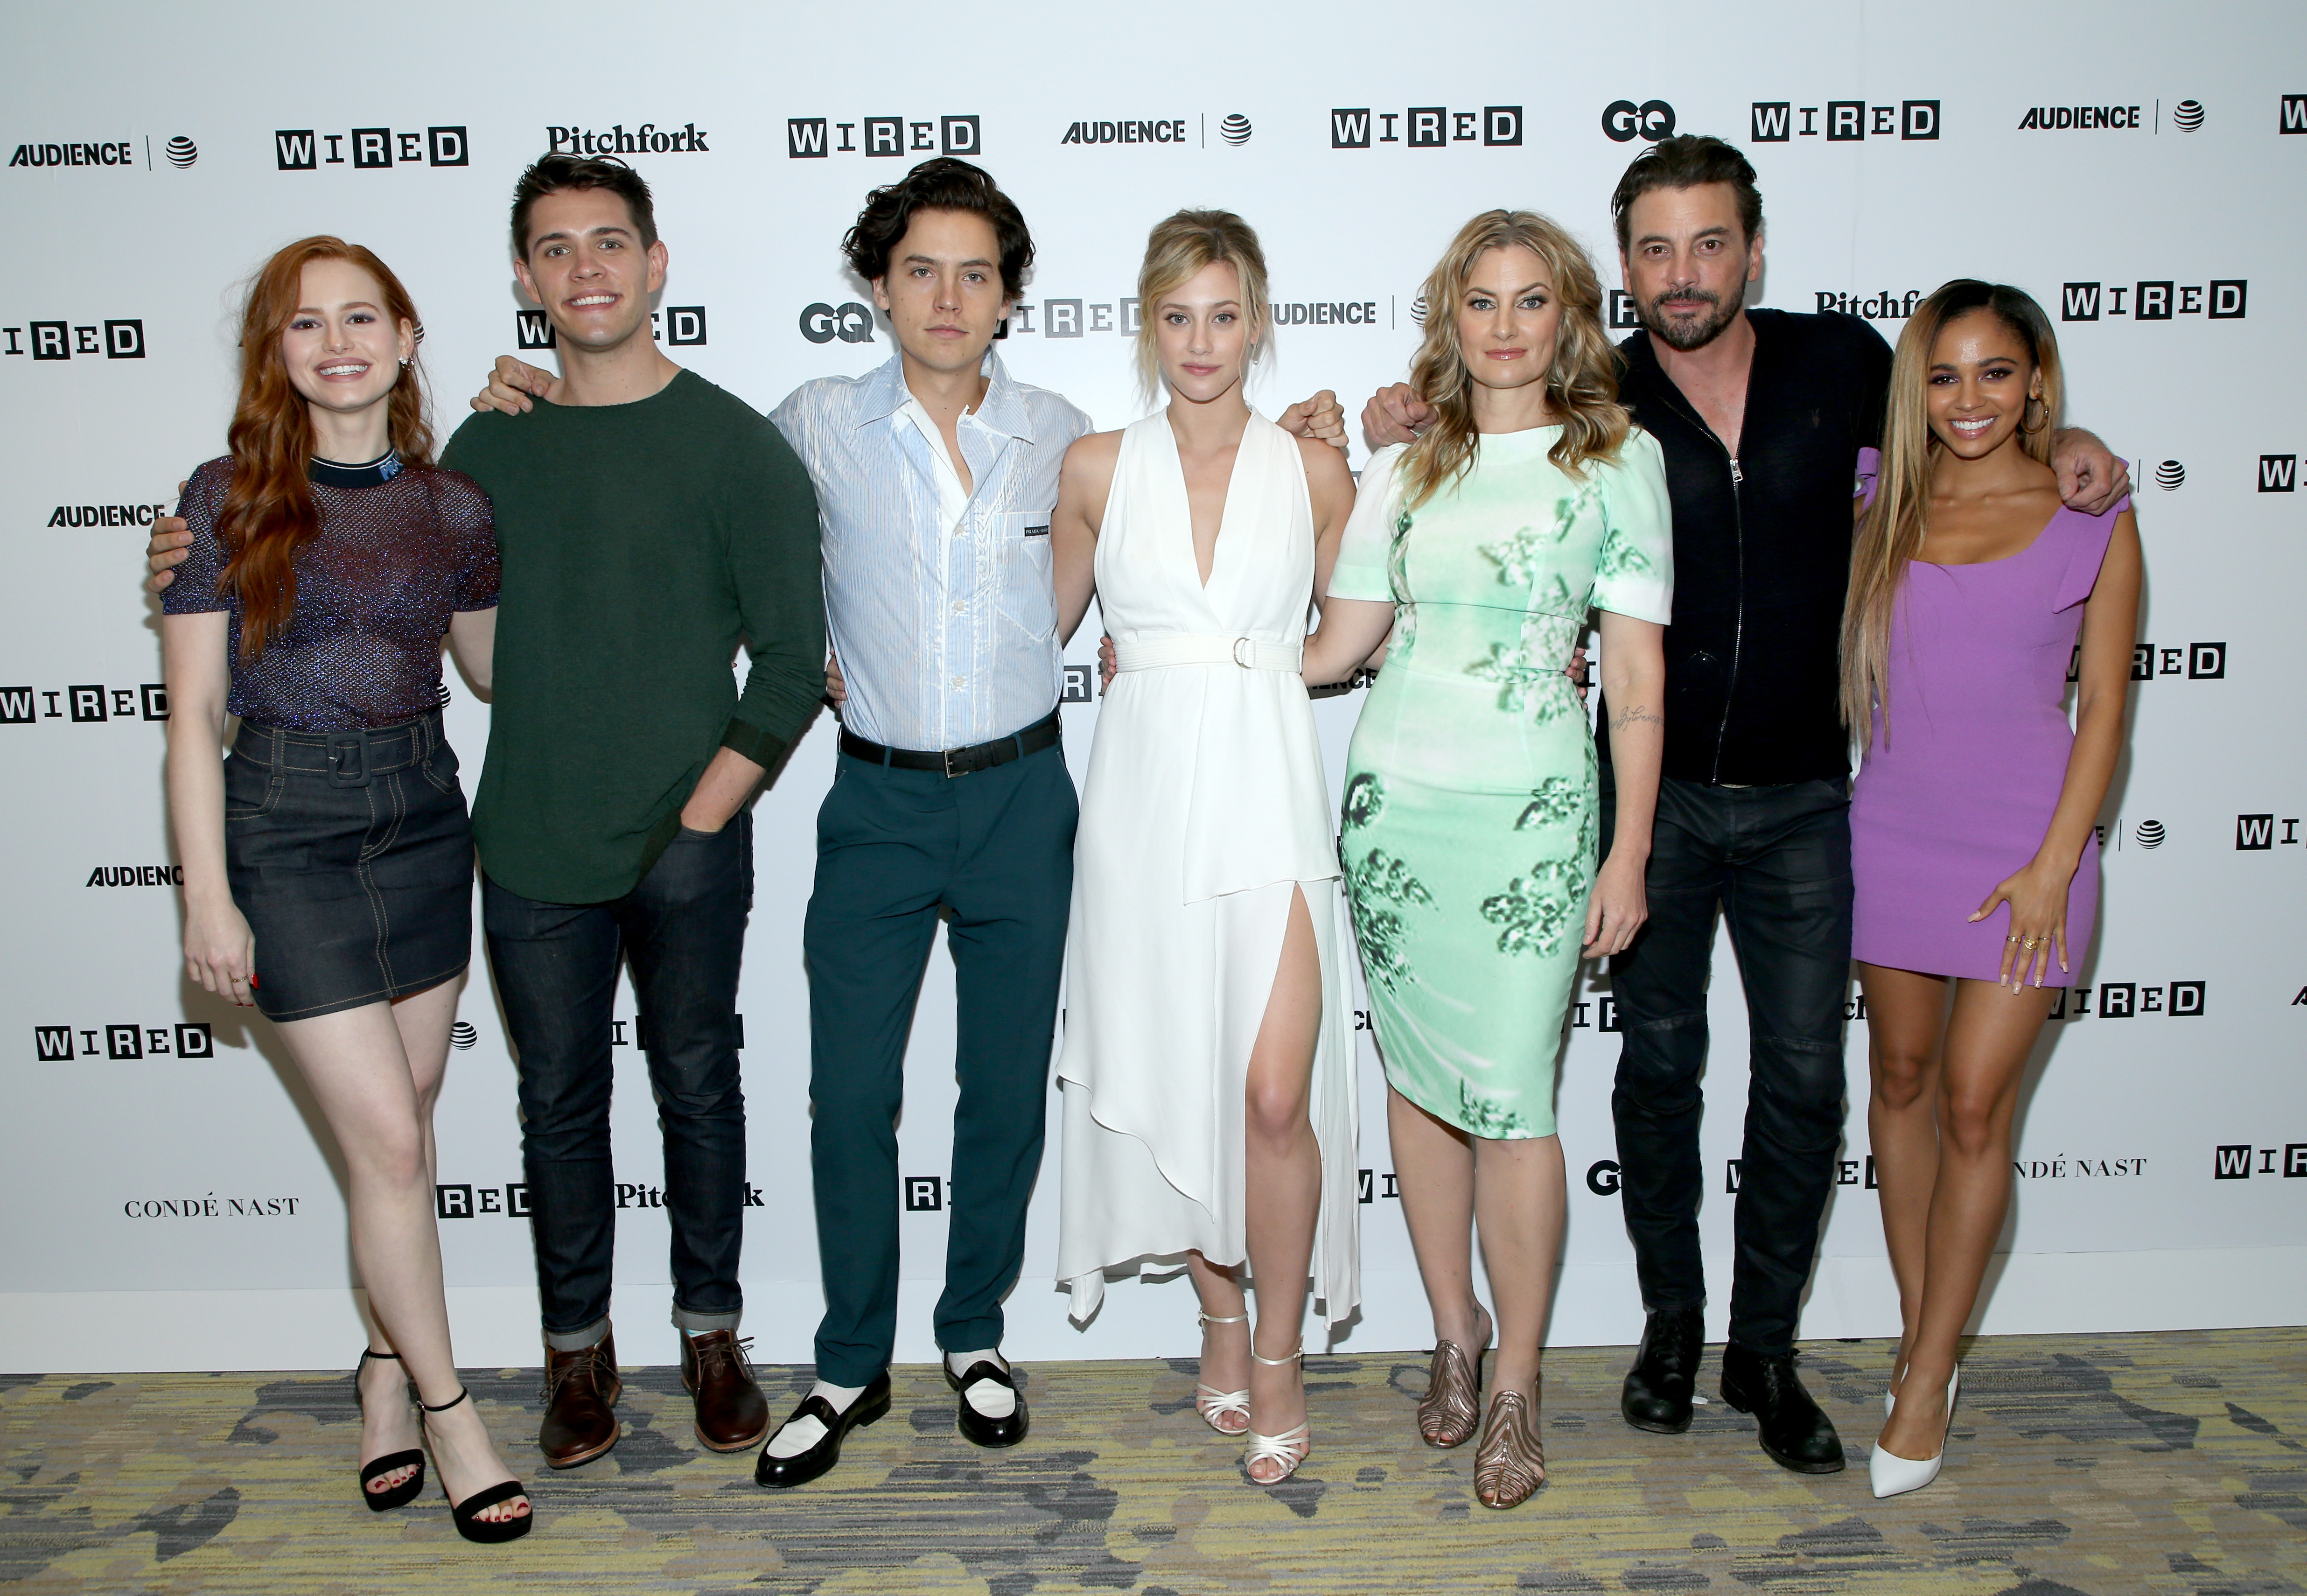 (L-R) Madelaine Petsch, Casey Cott, Cole Sprouse, Lili Reinhart, Madchen Amick, Skeet Ulrich, and Vanessa Morgan of 'Riverdale' attends the 2018 WIRED Cafe at Comic Con presented by AT&T Audience Network at Omni Hotel on July 21, 2018 in San Diego, California.